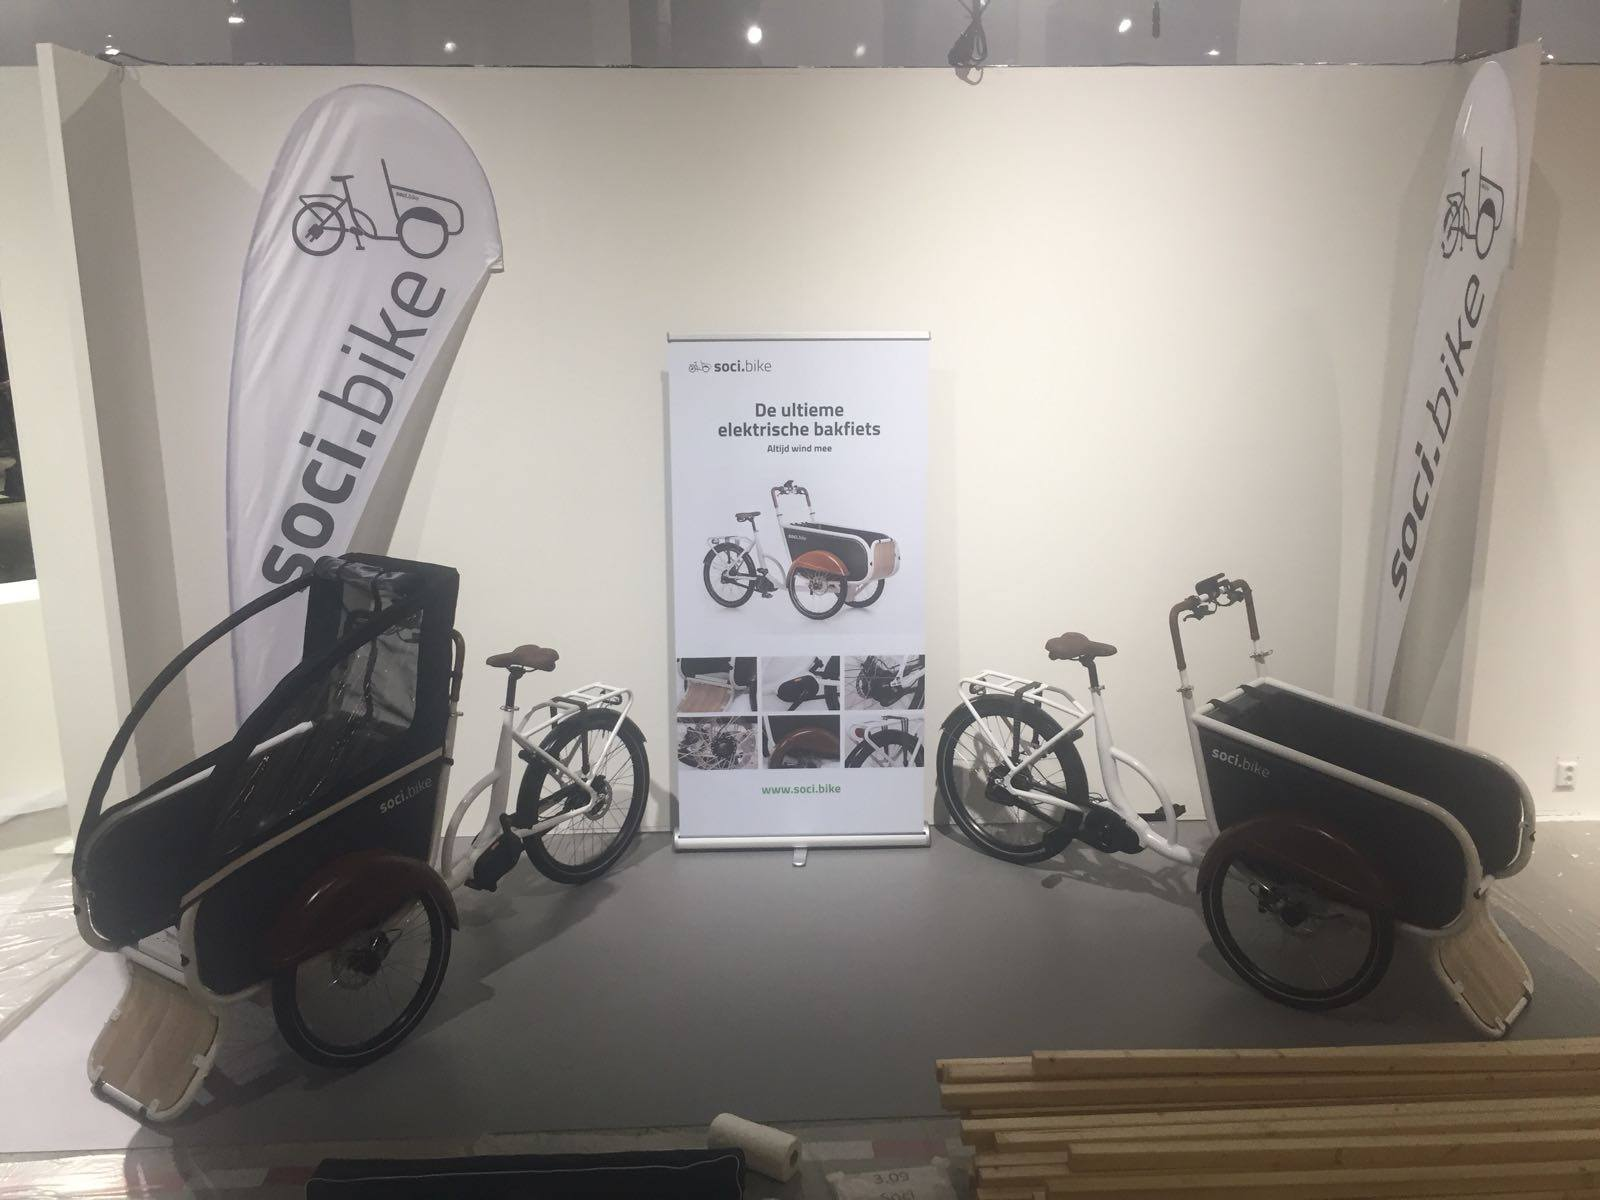 soci.bike op Dutch Design Week